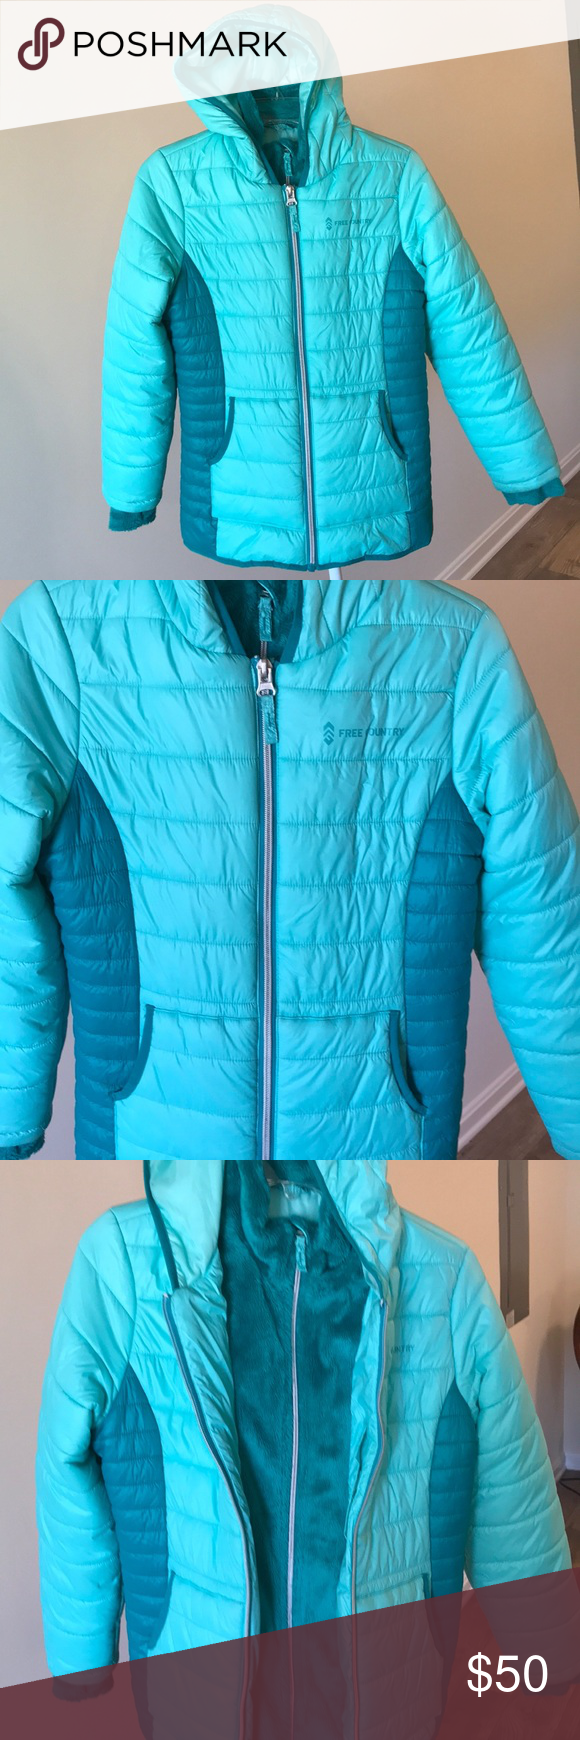 Girls Free Country Hooded Puffer Coat Warm And Cozy Puffer Jacket With Attached Hood Storm Placket And Chin Guard Fle Clothes Design Puffer Coat Plus Fashion [ 1740 x 580 Pixel ]